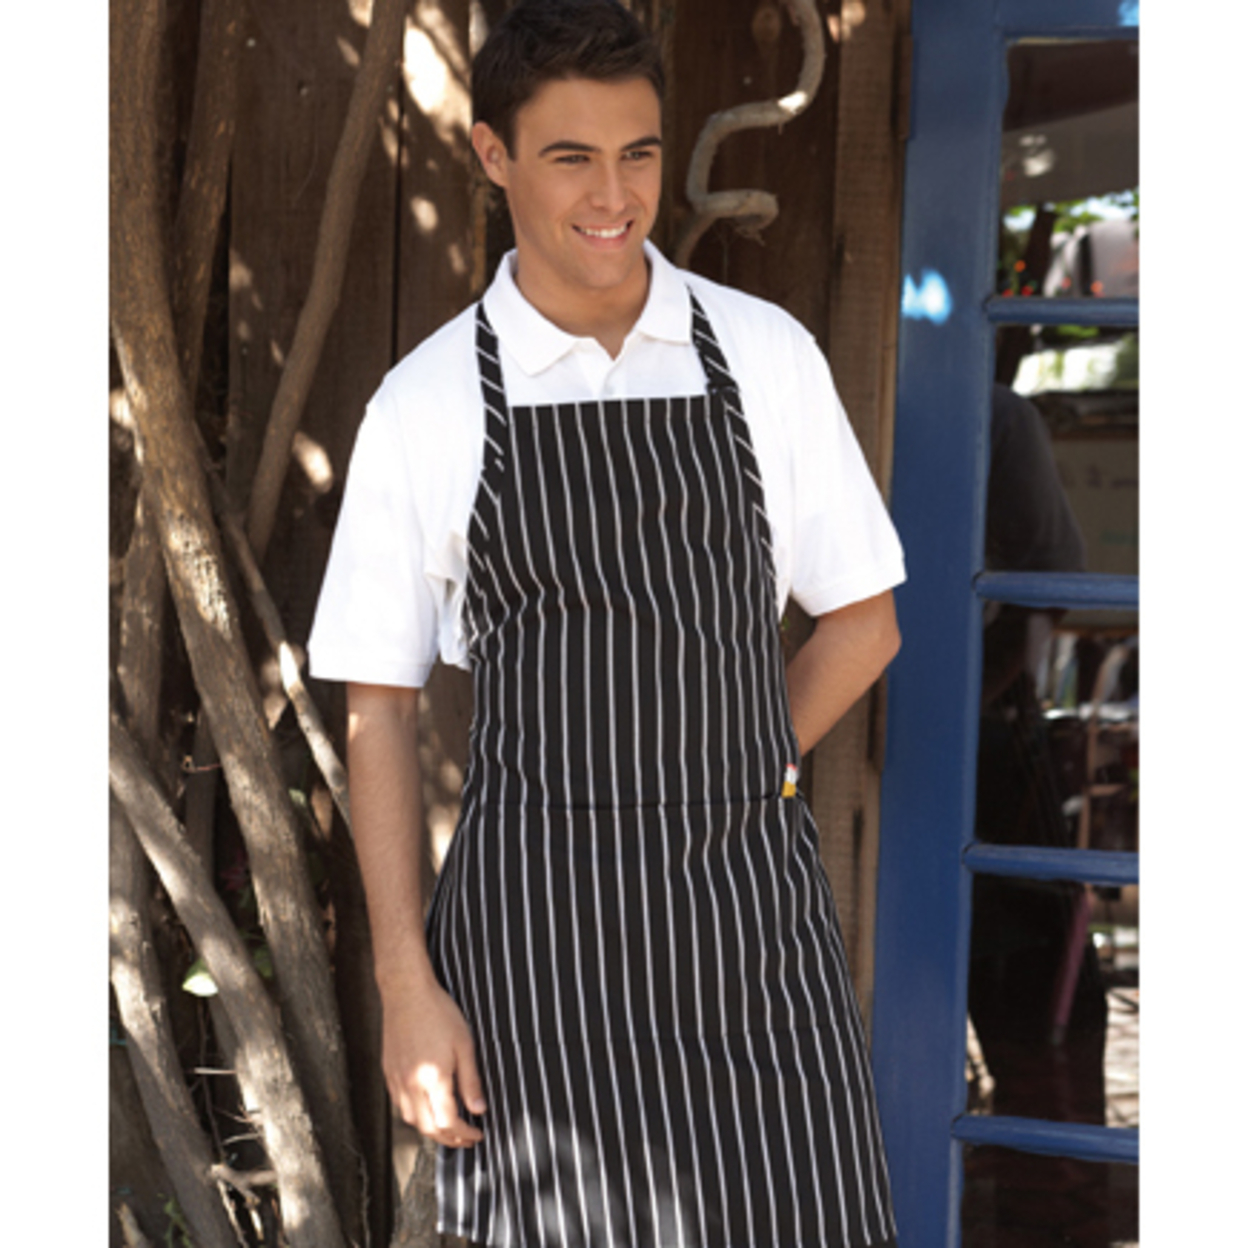 Uncommon Threads 3018-1600 Ajustable Butcher Apron 2 Section Pocket in Navy 5a3c2c012a00e44b69450636